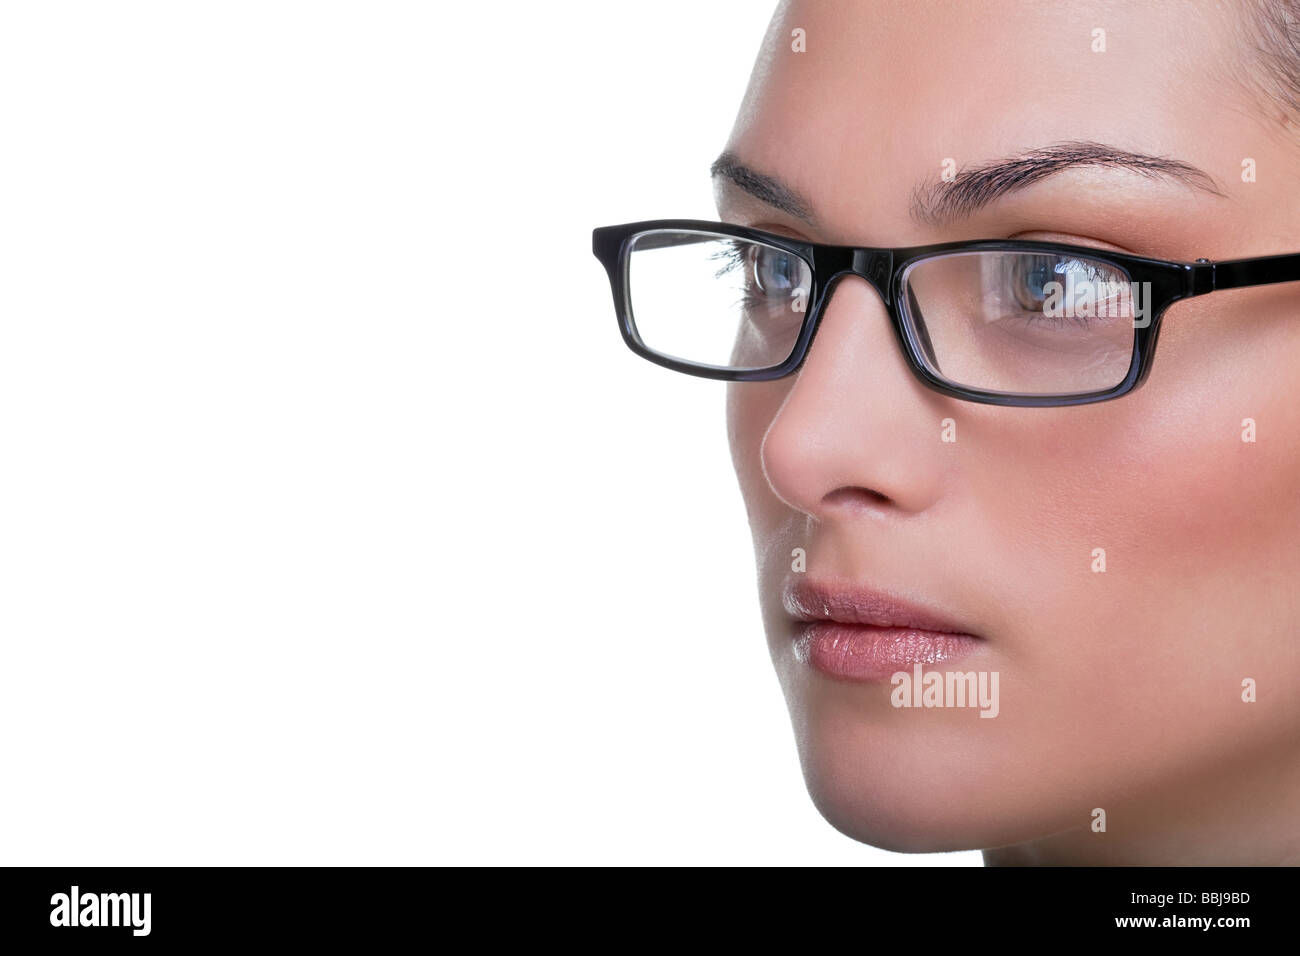 Close up face portrait of a woman wearing glasses - Stock Image